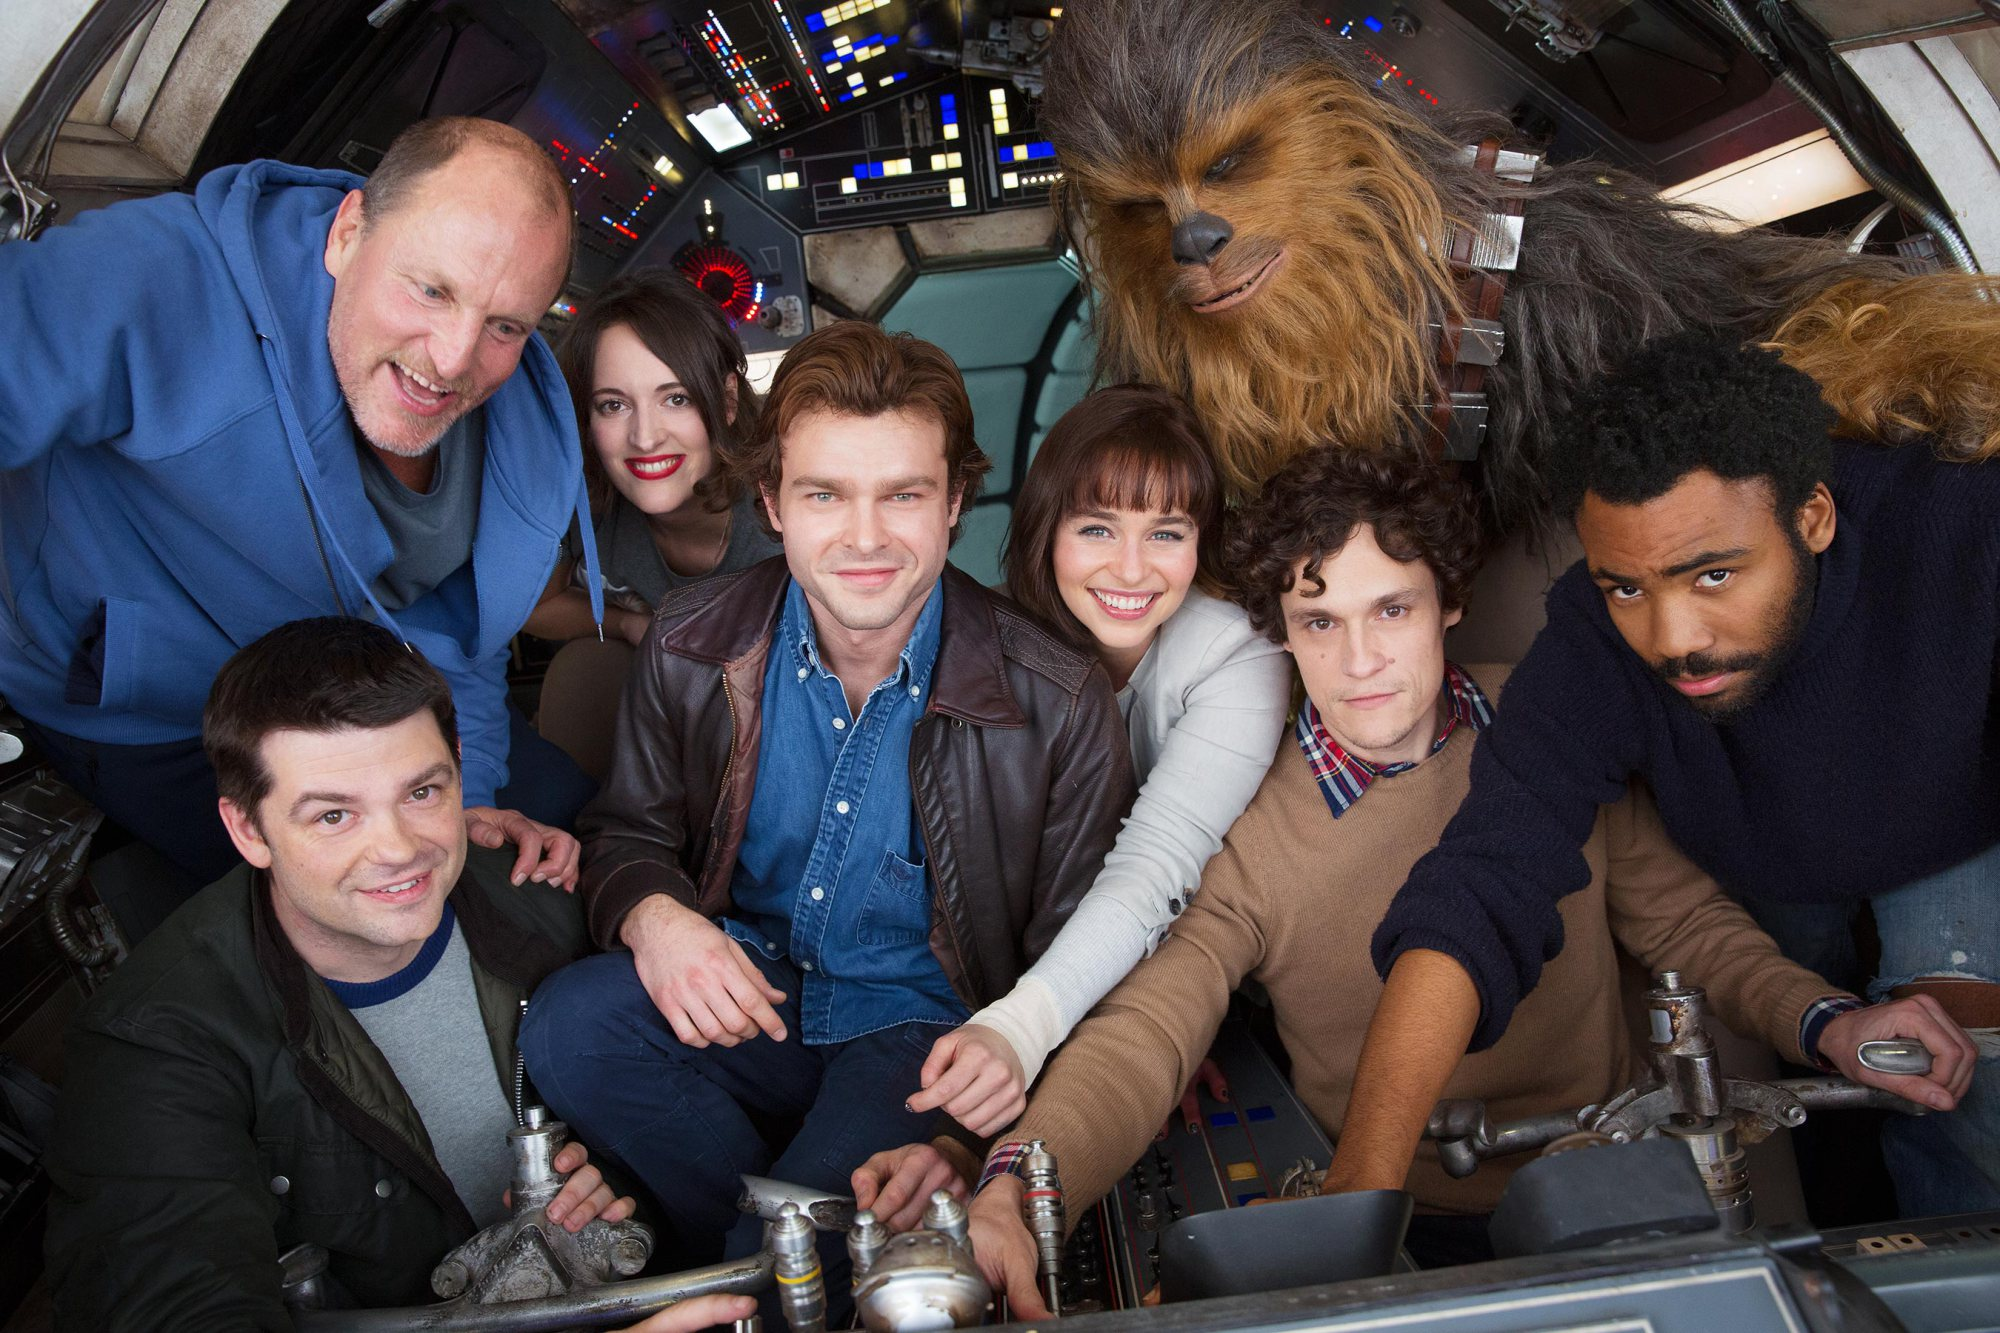 https://cinemaplanet.pt/wp-content/uploads/2017/02/han-solo-movie.jpg